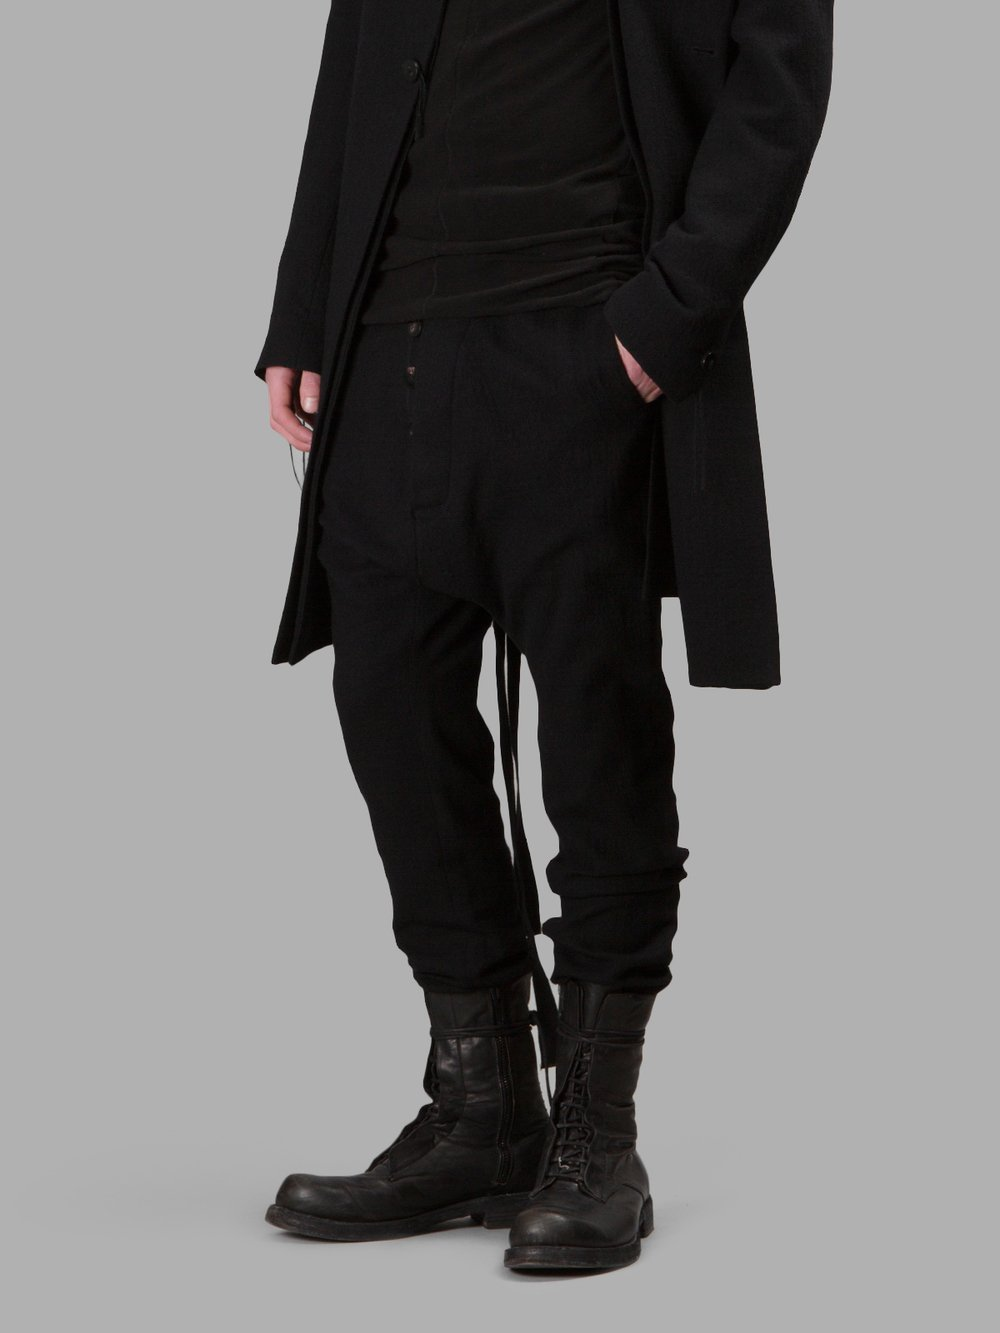 Image of CEDRIC JACQUEMYN Trousers